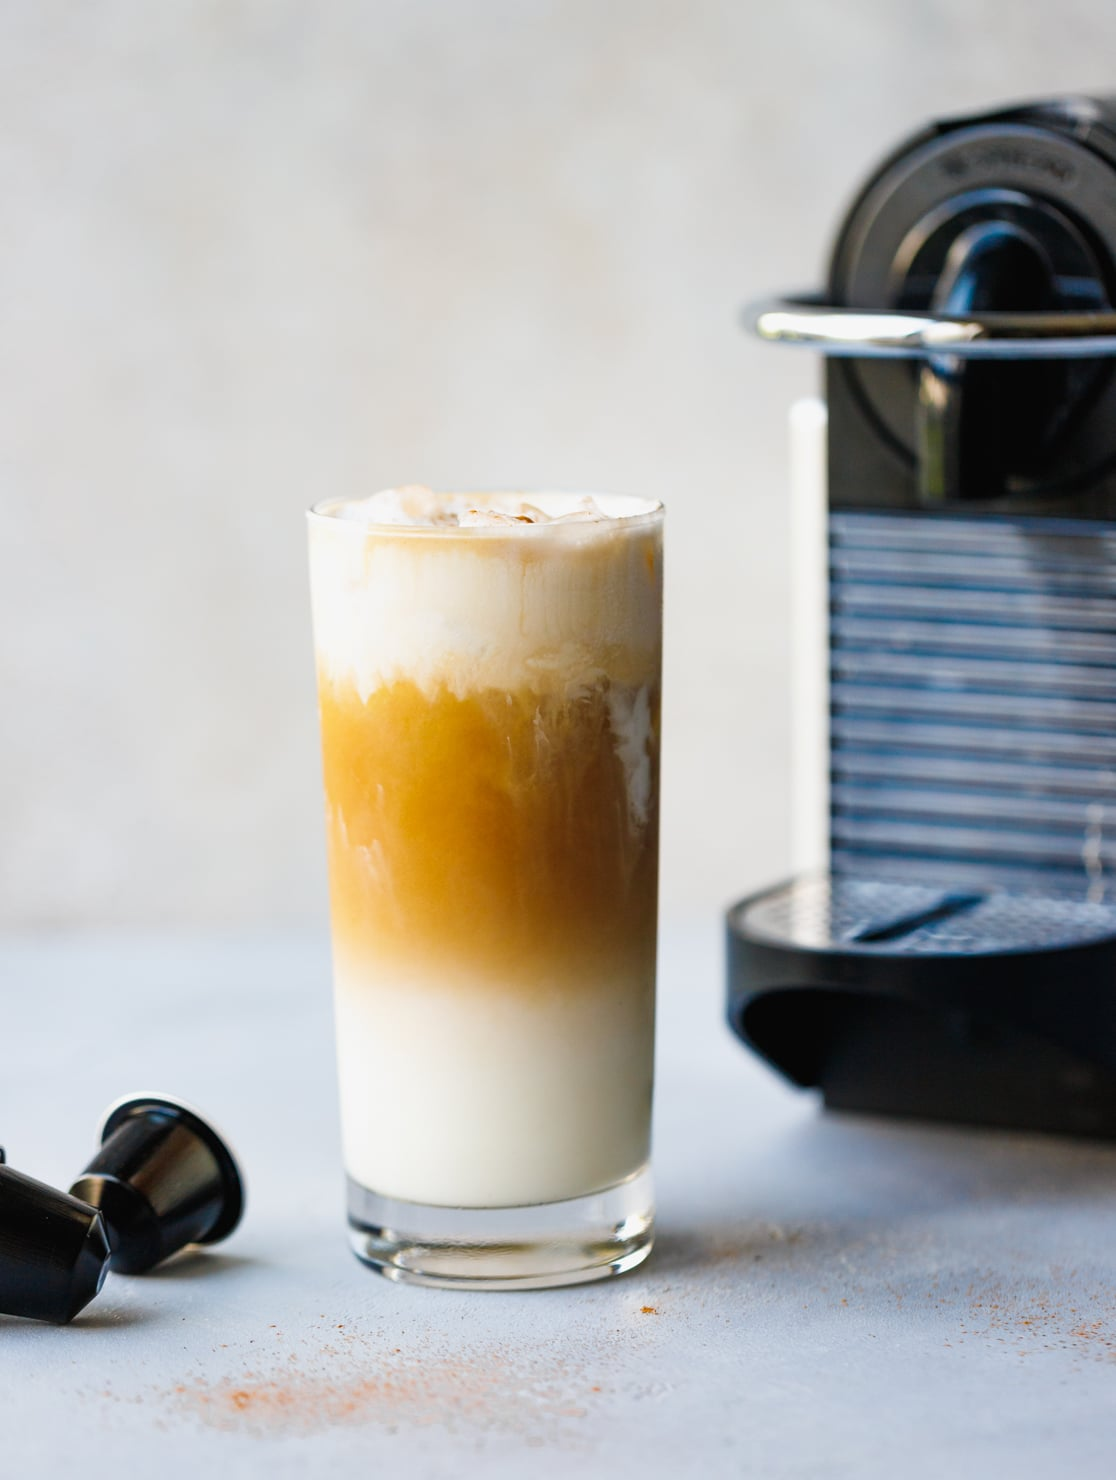 Iced Vanilla Coffee Latte Recipe Using Nespresso - easy to make, sweet, flavorful and refreshing. Perfect for summer!